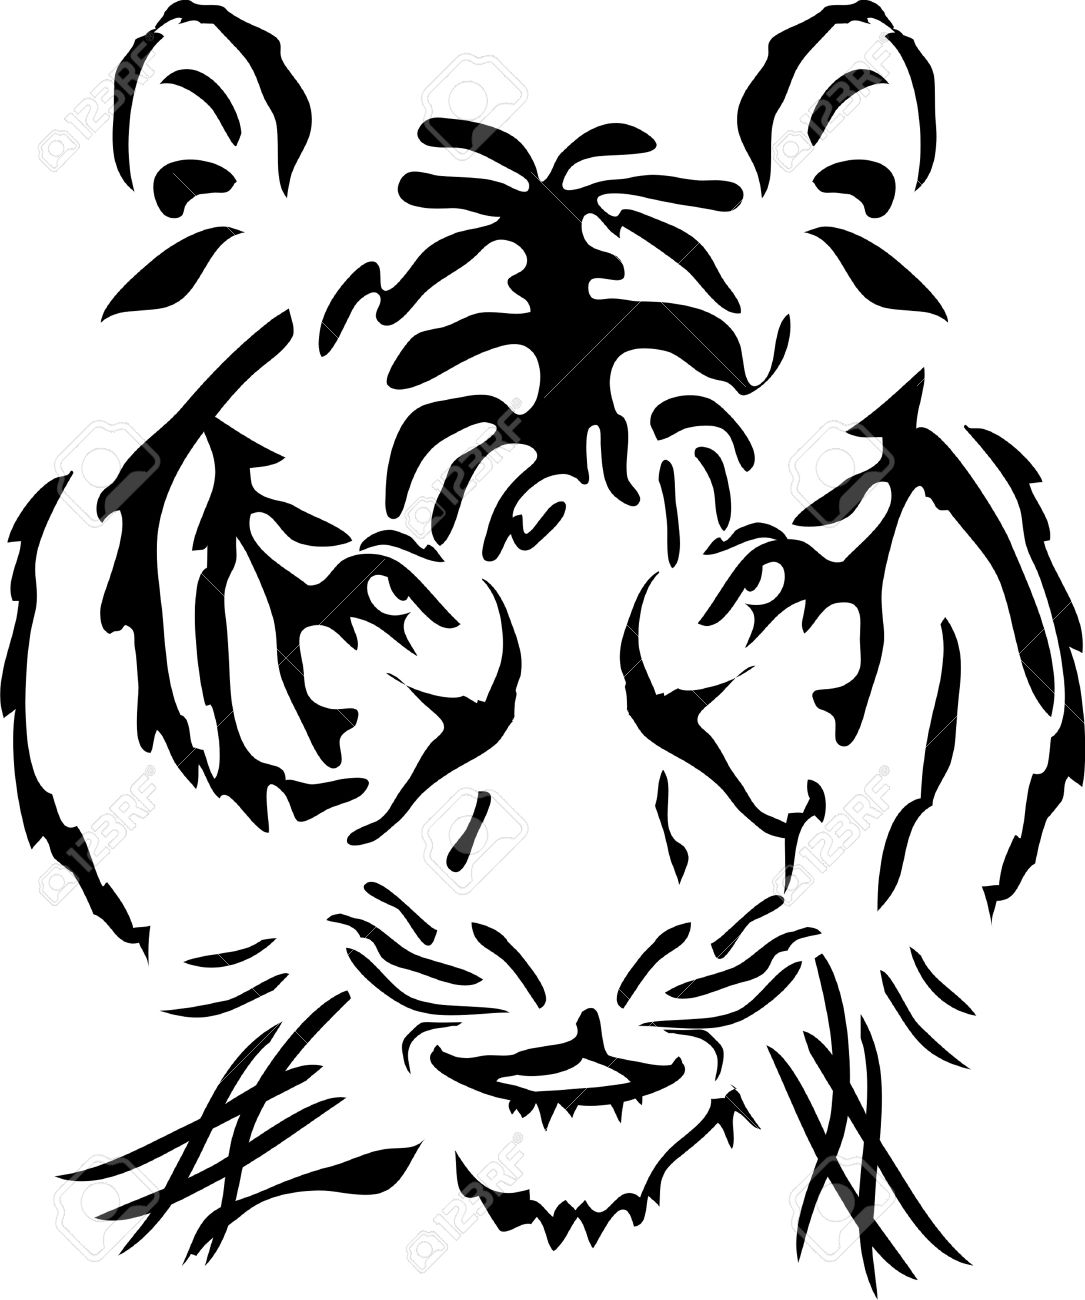 White Tiger clipart bengal tiger Favorite Bengal Black and Lion